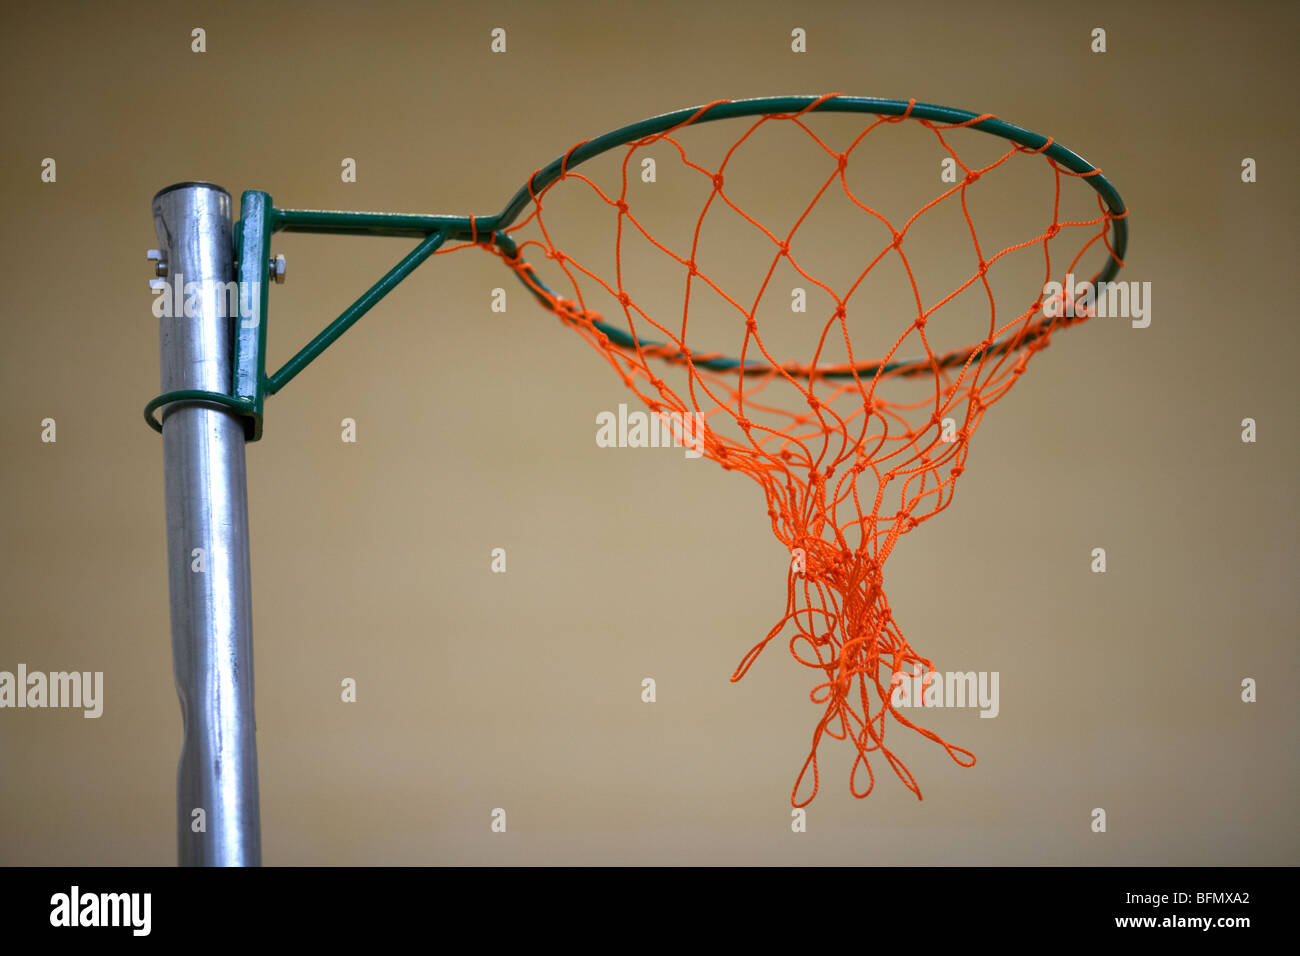 netball net in a school gym sports hall selective focus Stock Photo